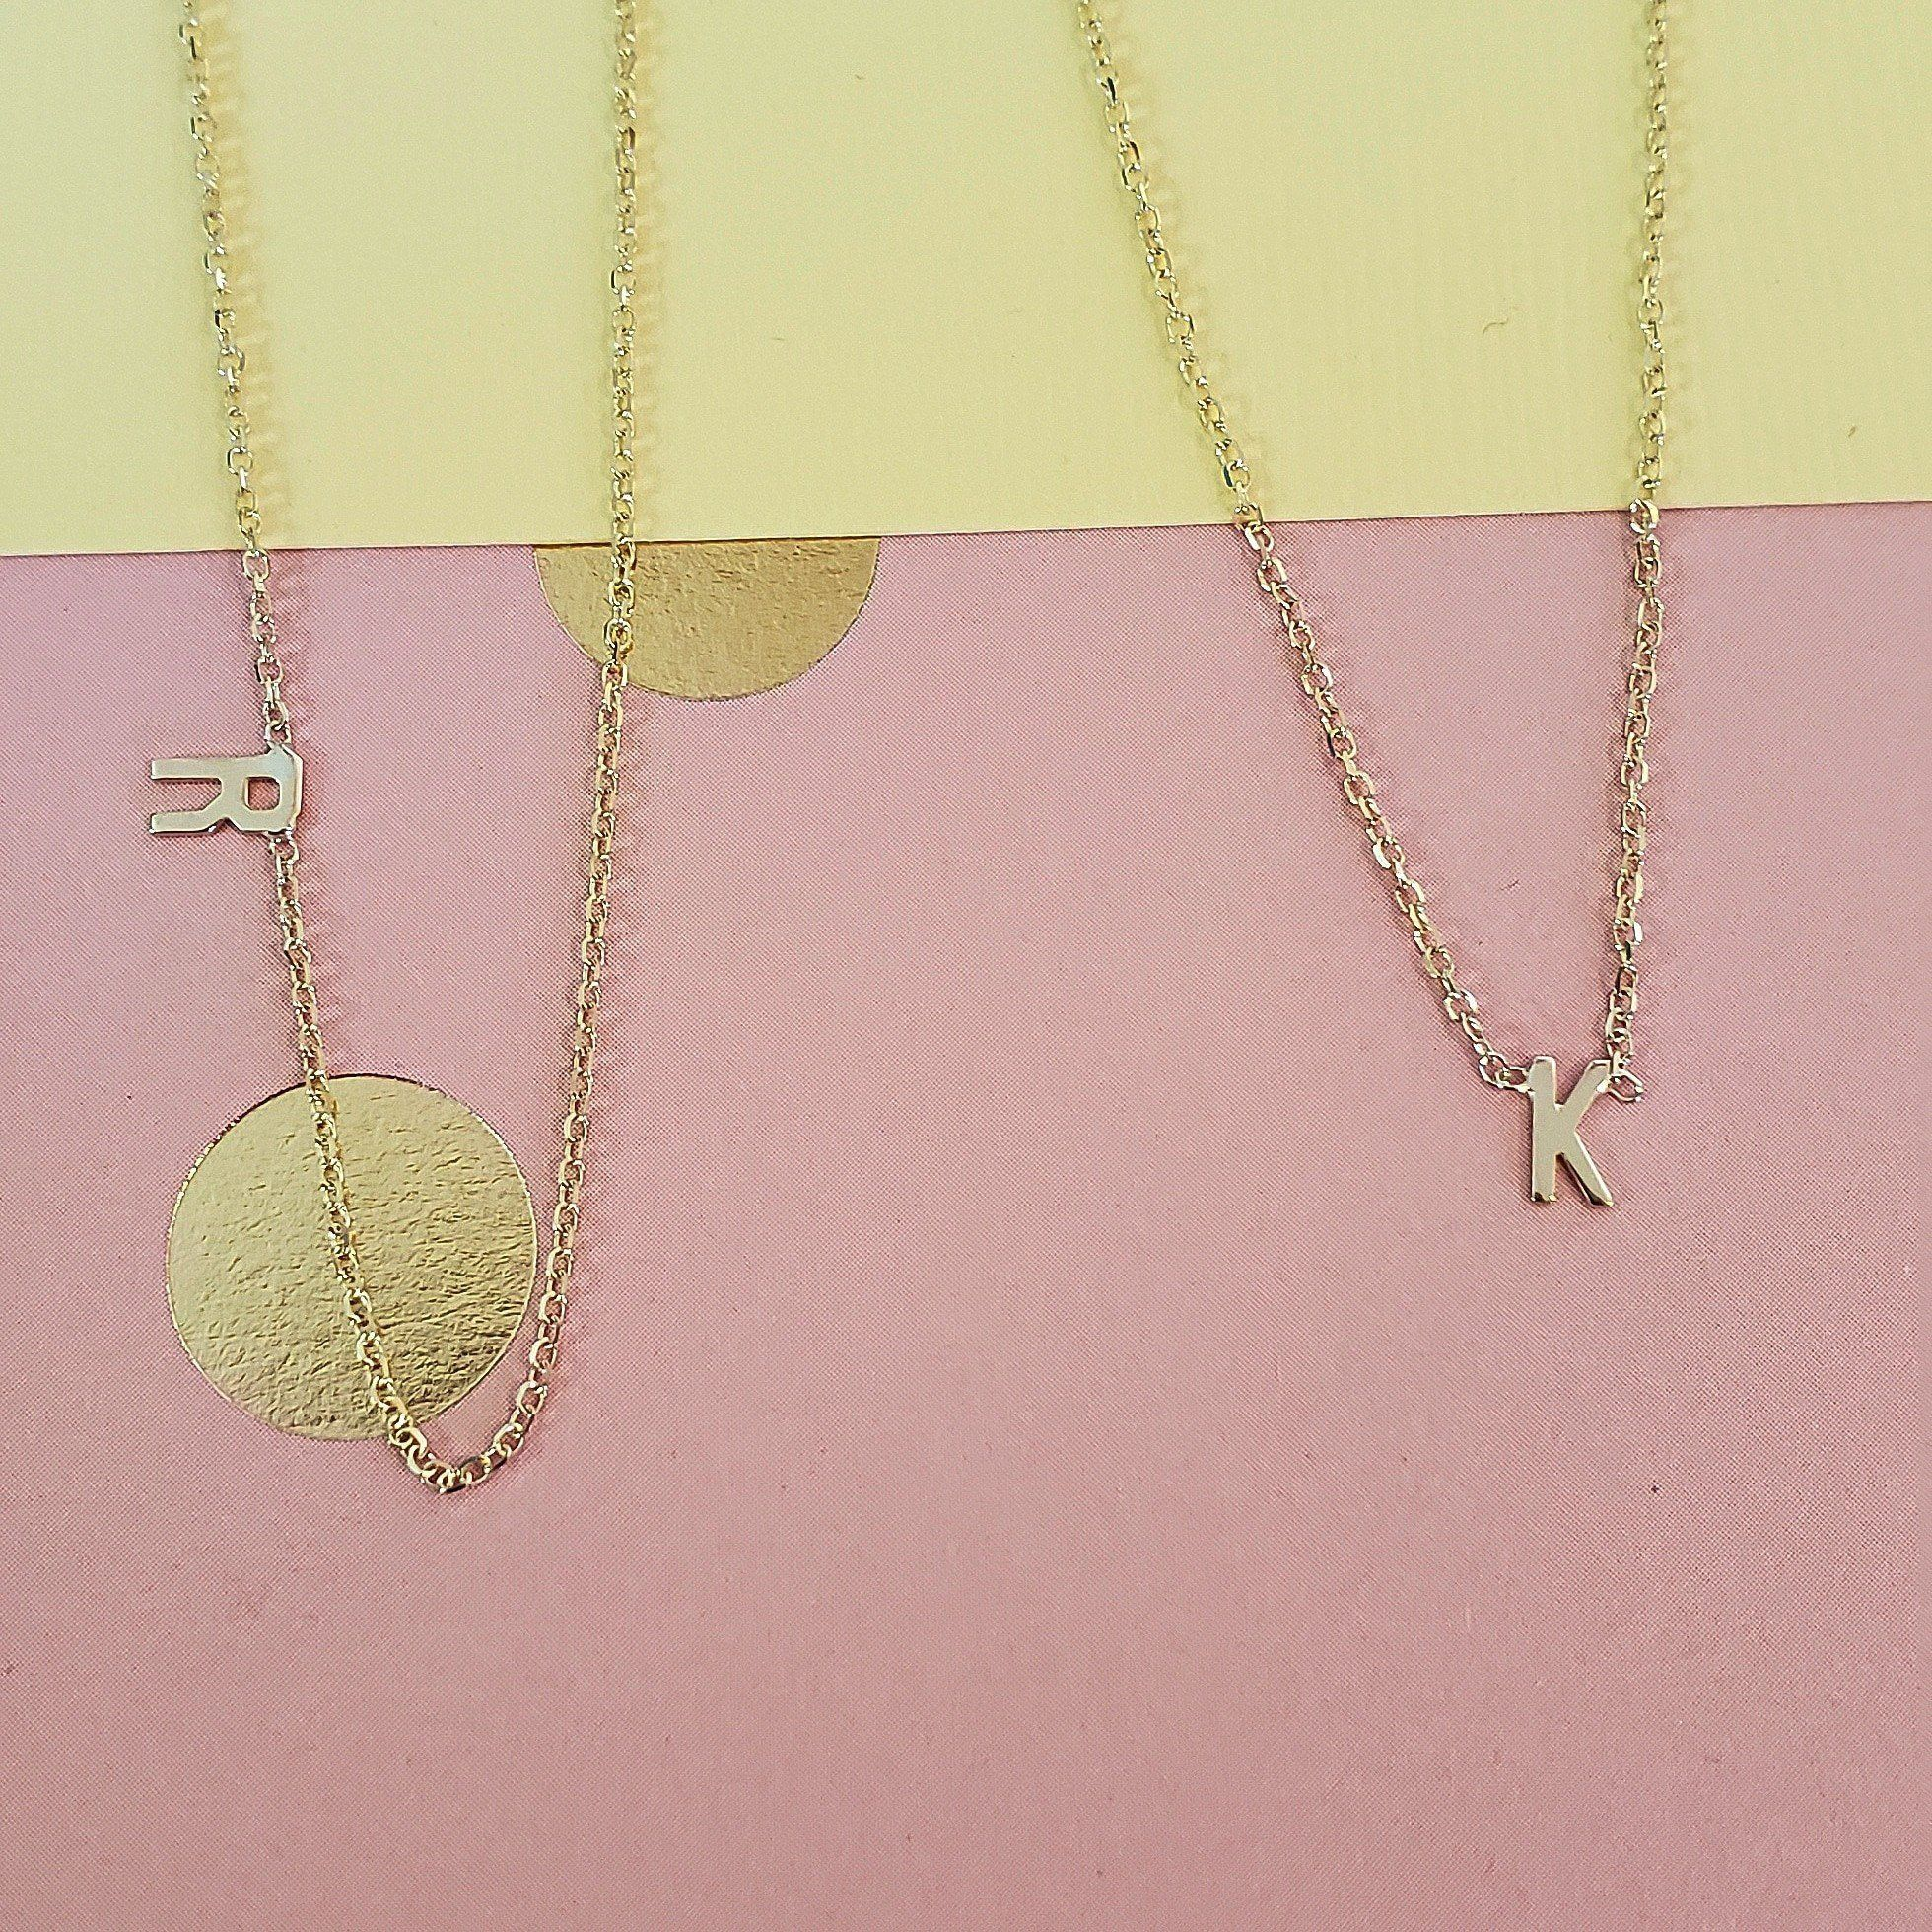 Gold Initial Necklace 10k Family Necklace Initial Necklace Dainty Initial Necklace Letter Necklace Gold Initial Necklace Initial Jewelry Gold Letter Necklace Letter Necklace Monogram Necklace Gold